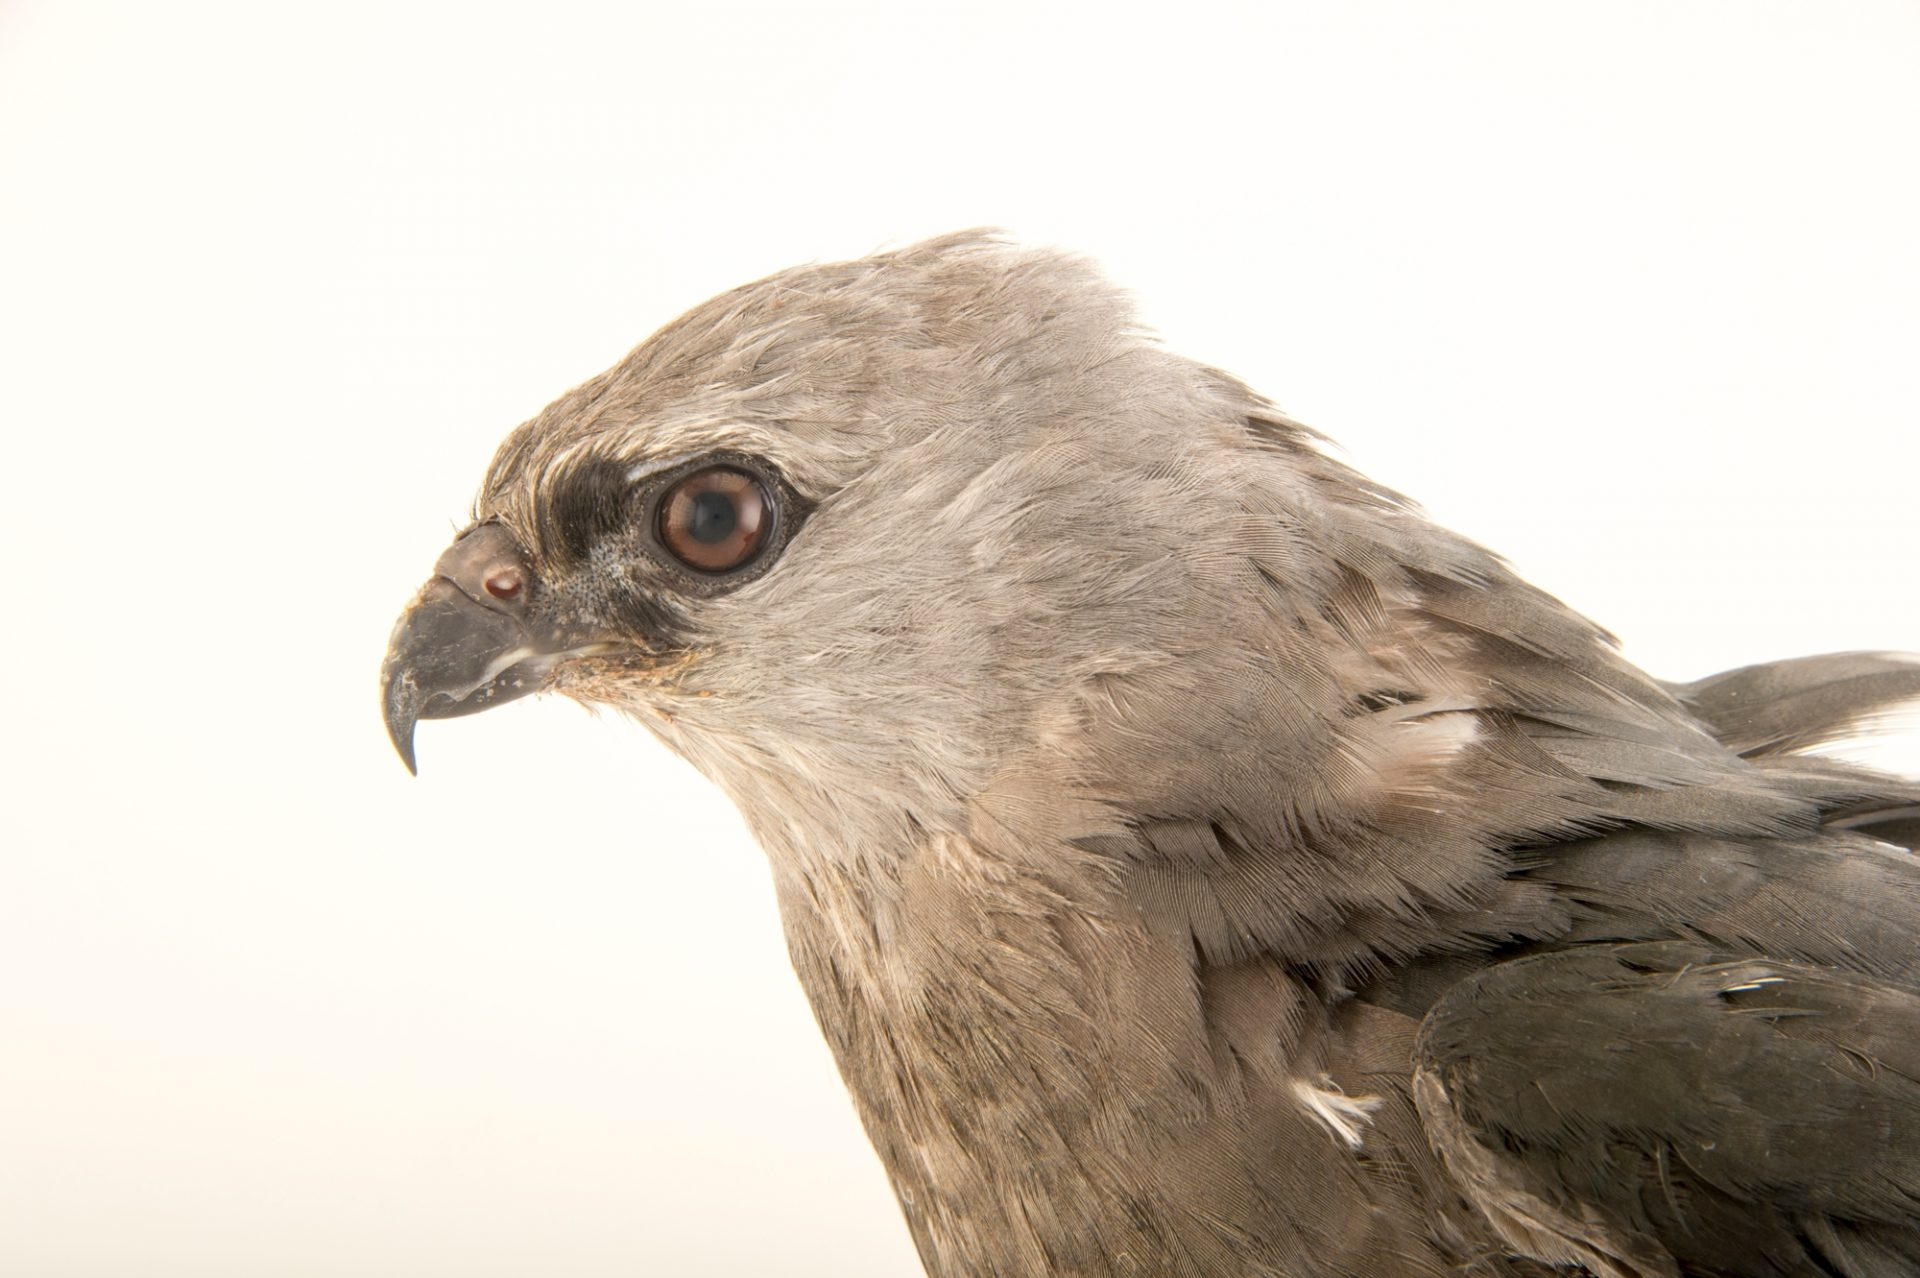 Photo: A Mississippi kite (Ictinia mississippiensis) at Rogers Wildlife Rehabilitation Center.